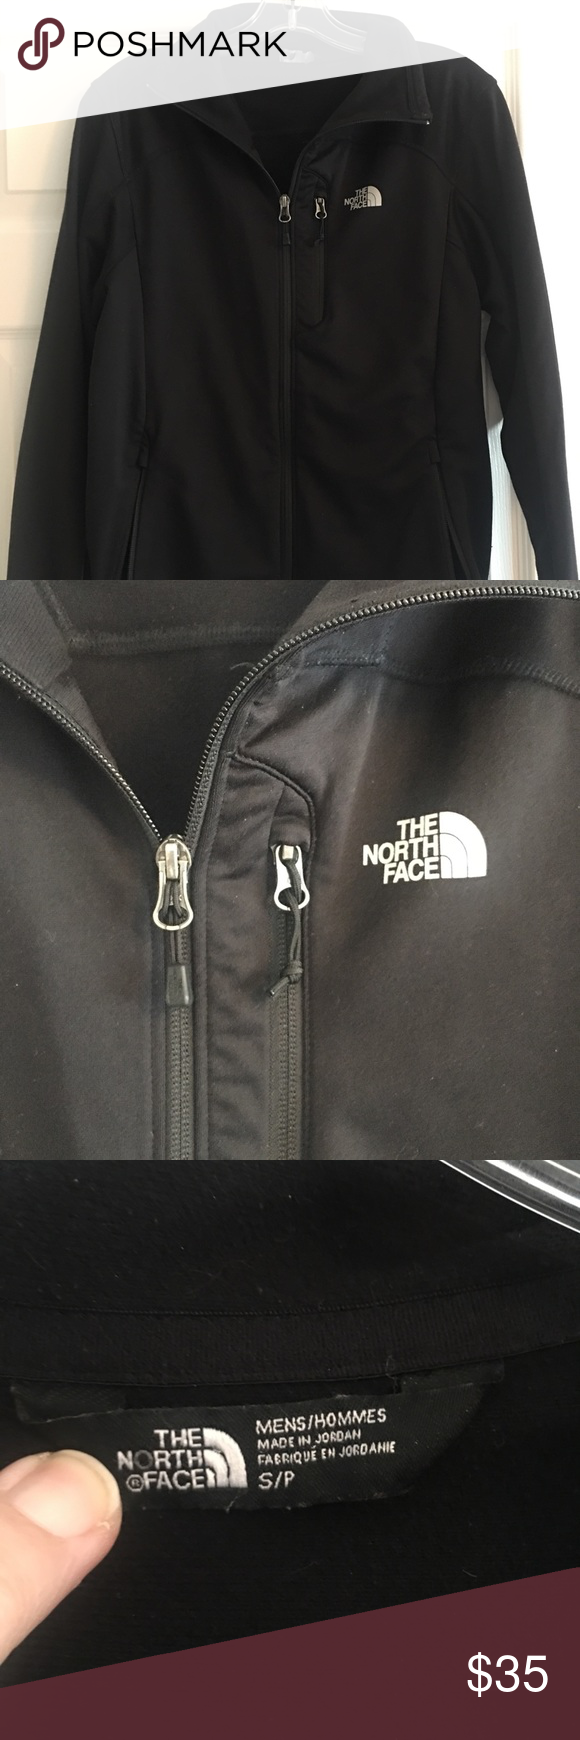 Men S The North Face Jacket North Face Jacket Jackets Black North Face [ 1740 x 580 Pixel ]